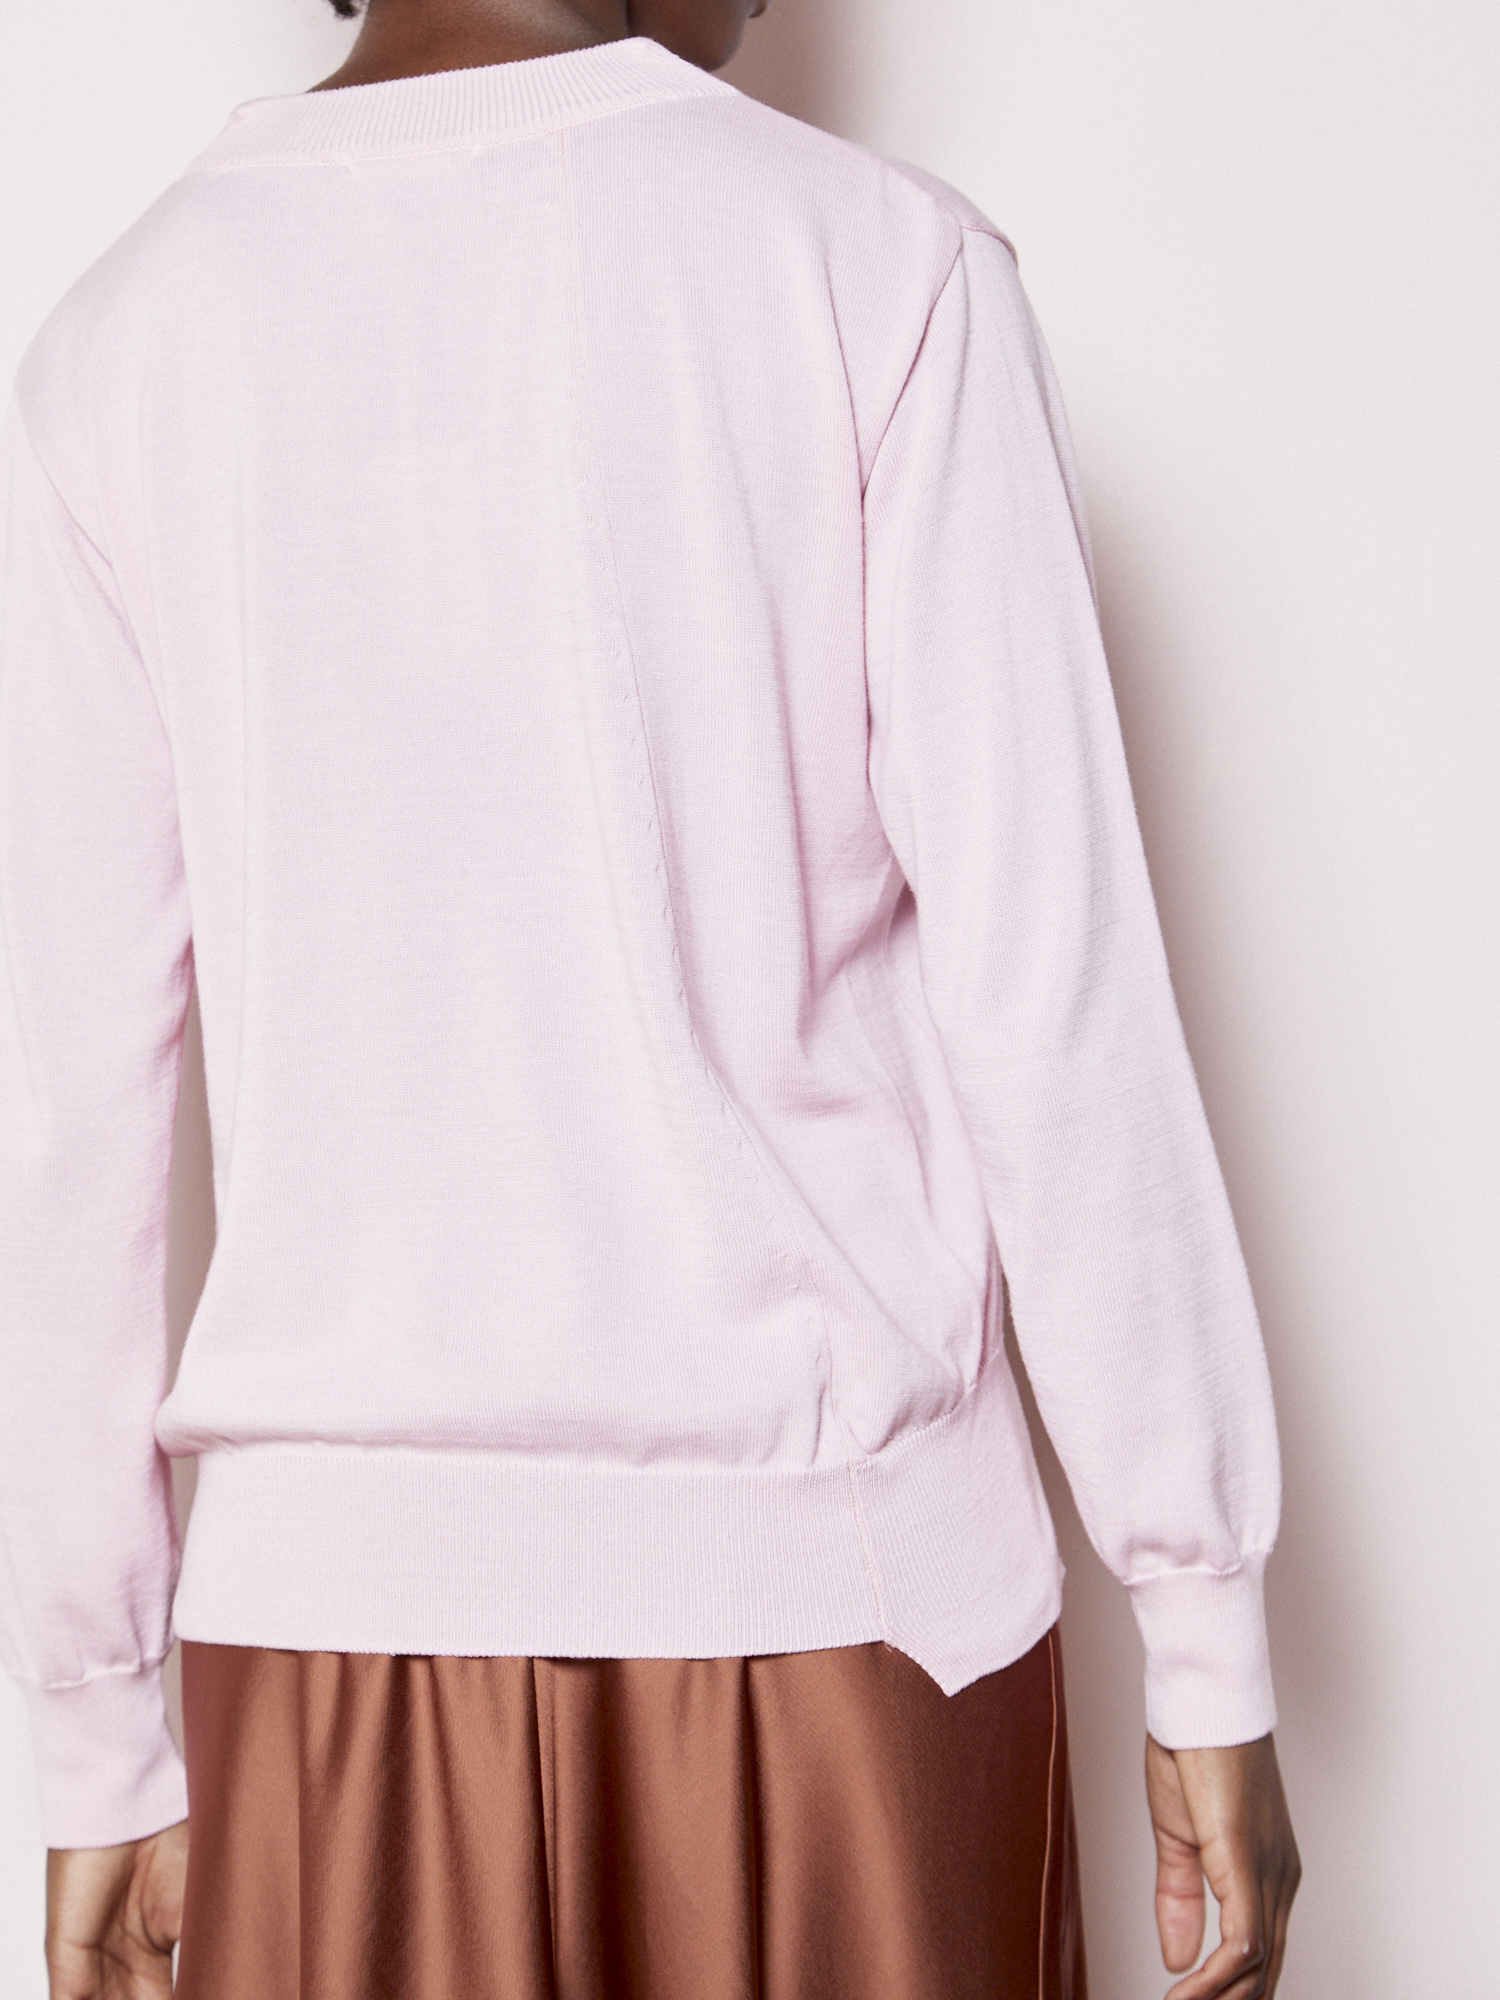 FAV Effortless Pink V-Neck Knit